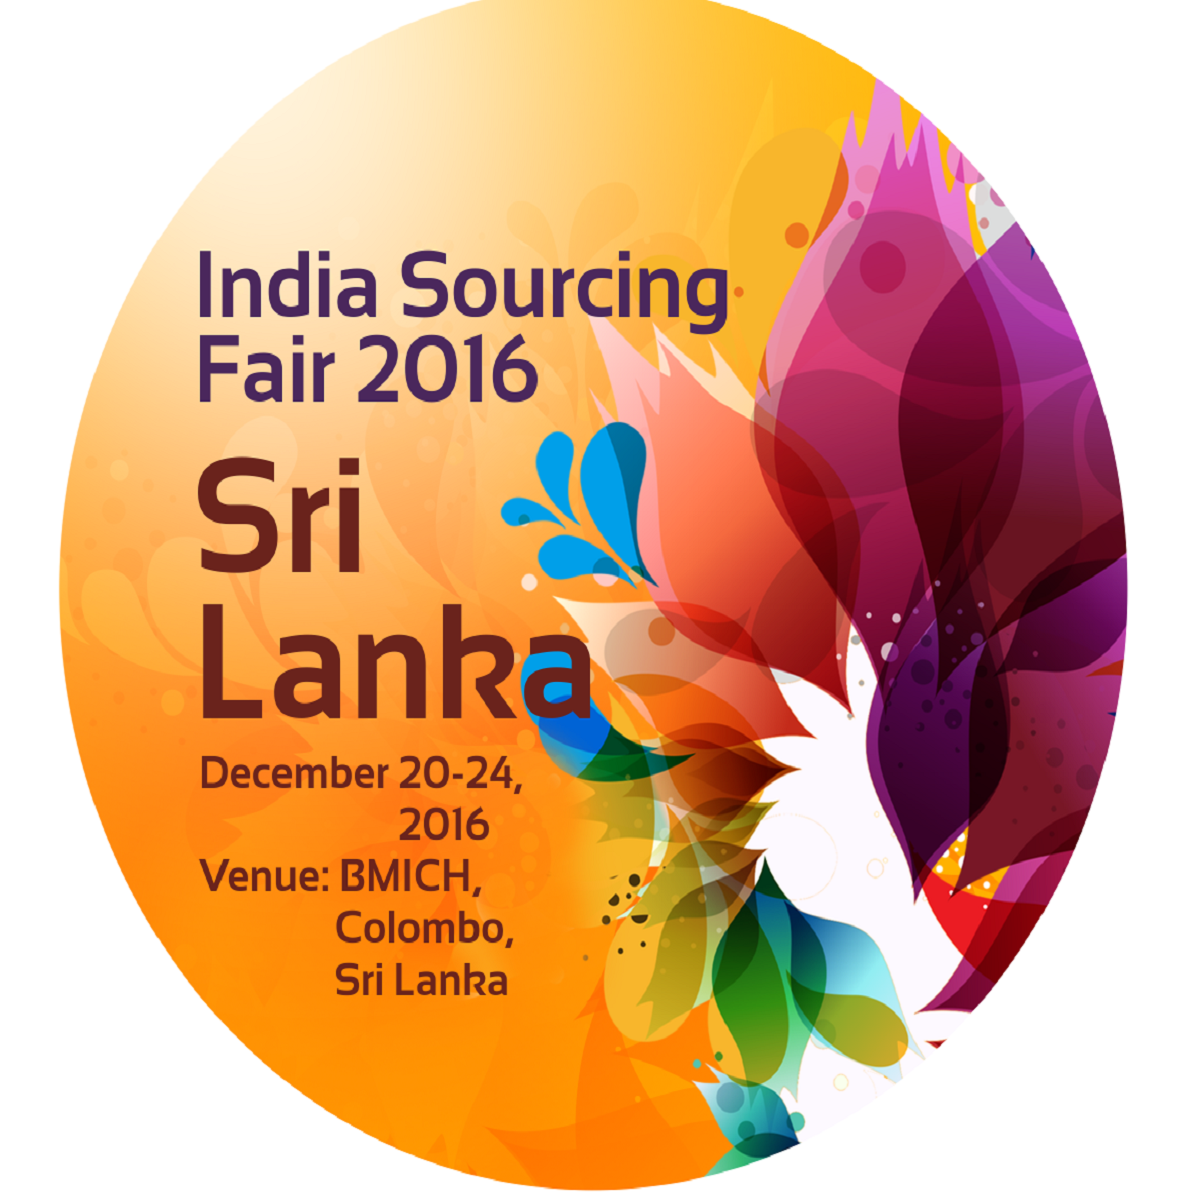 India Sourcing Fair, Colombo, Srilanka